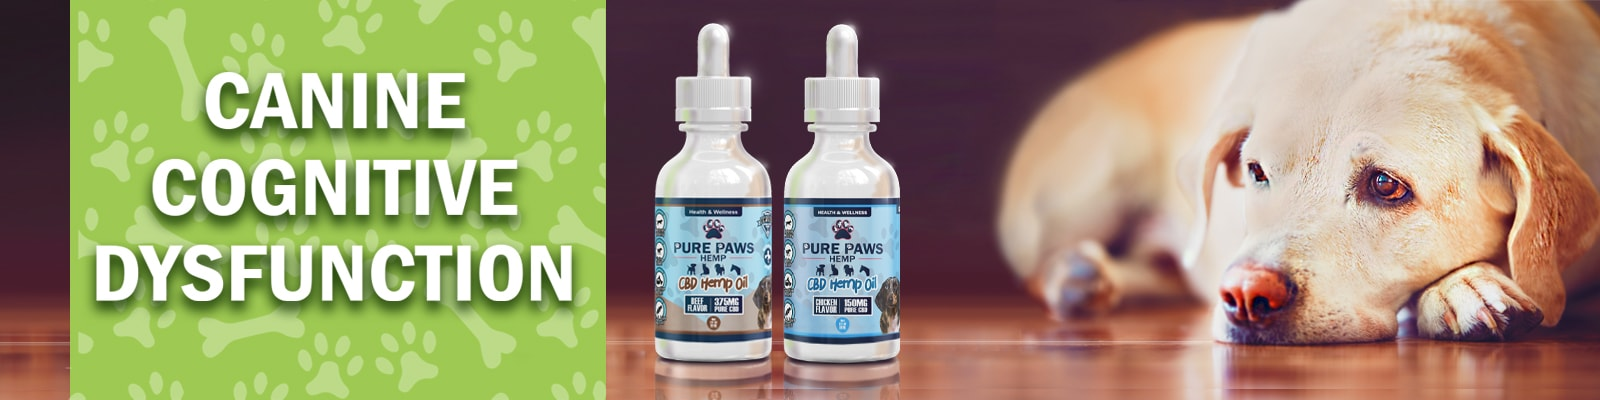 Pure Paws CBD Oil for Canine Cognitive Dysfunction